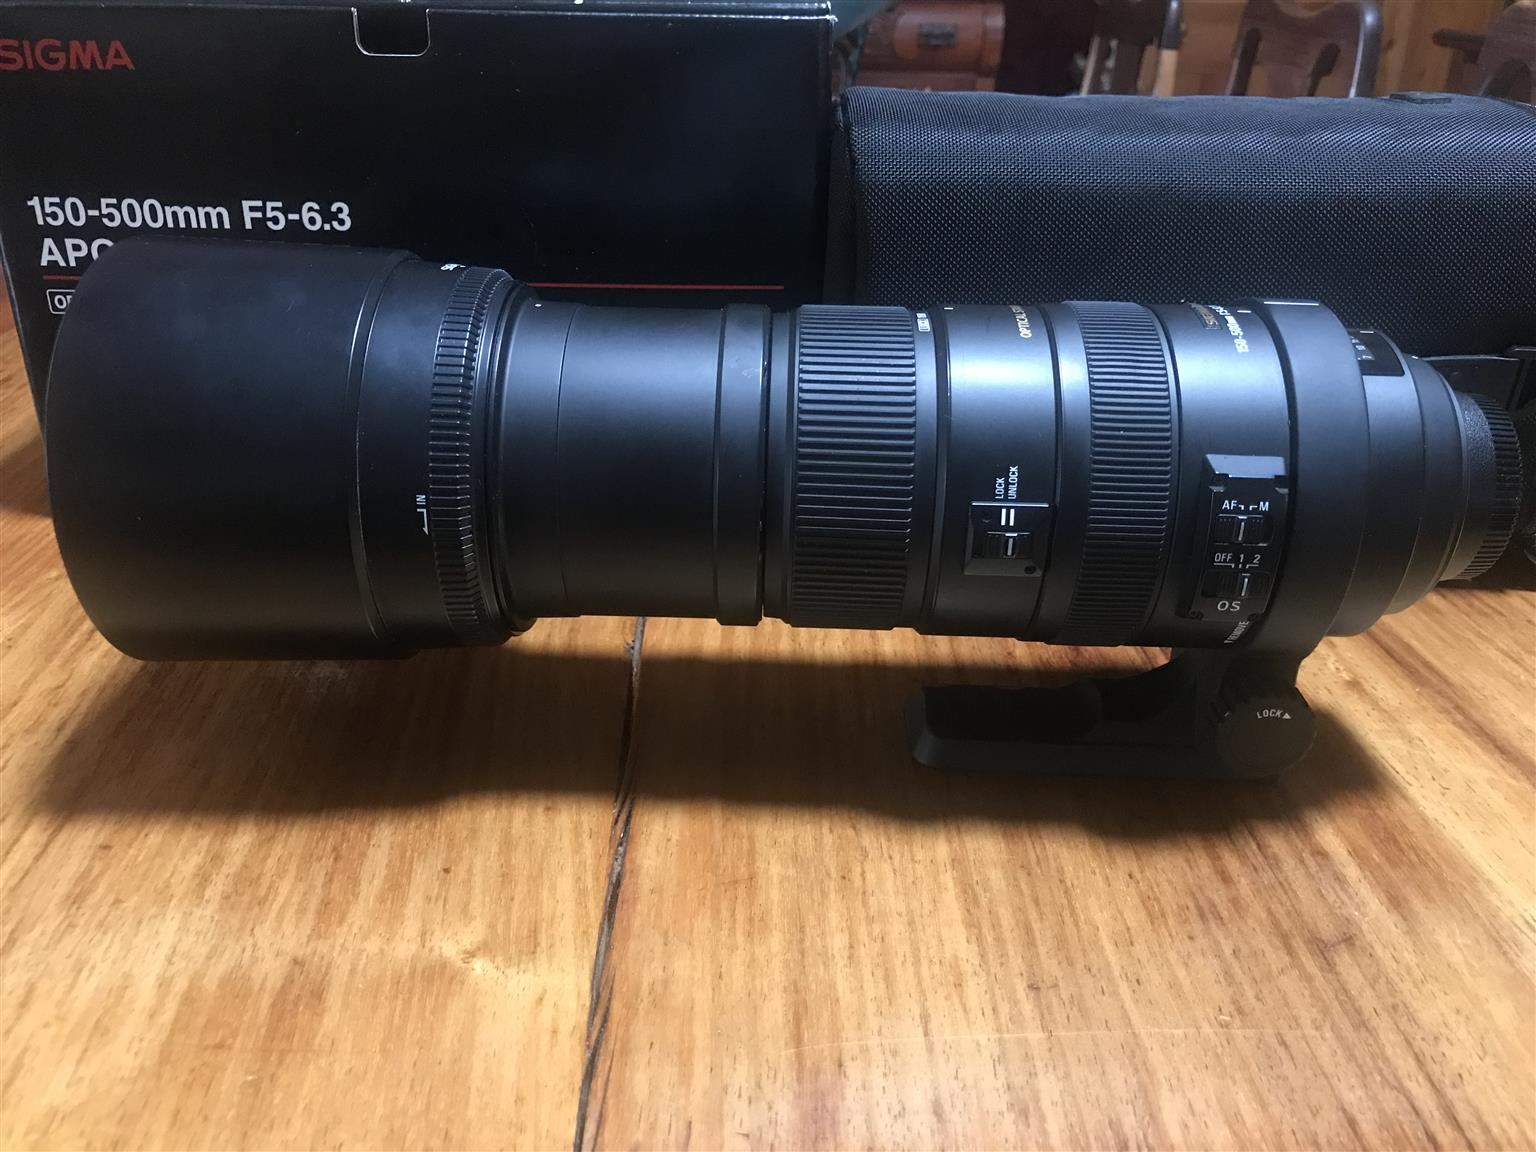 Sigma 150 - 500 lense for Cannon or Nikon